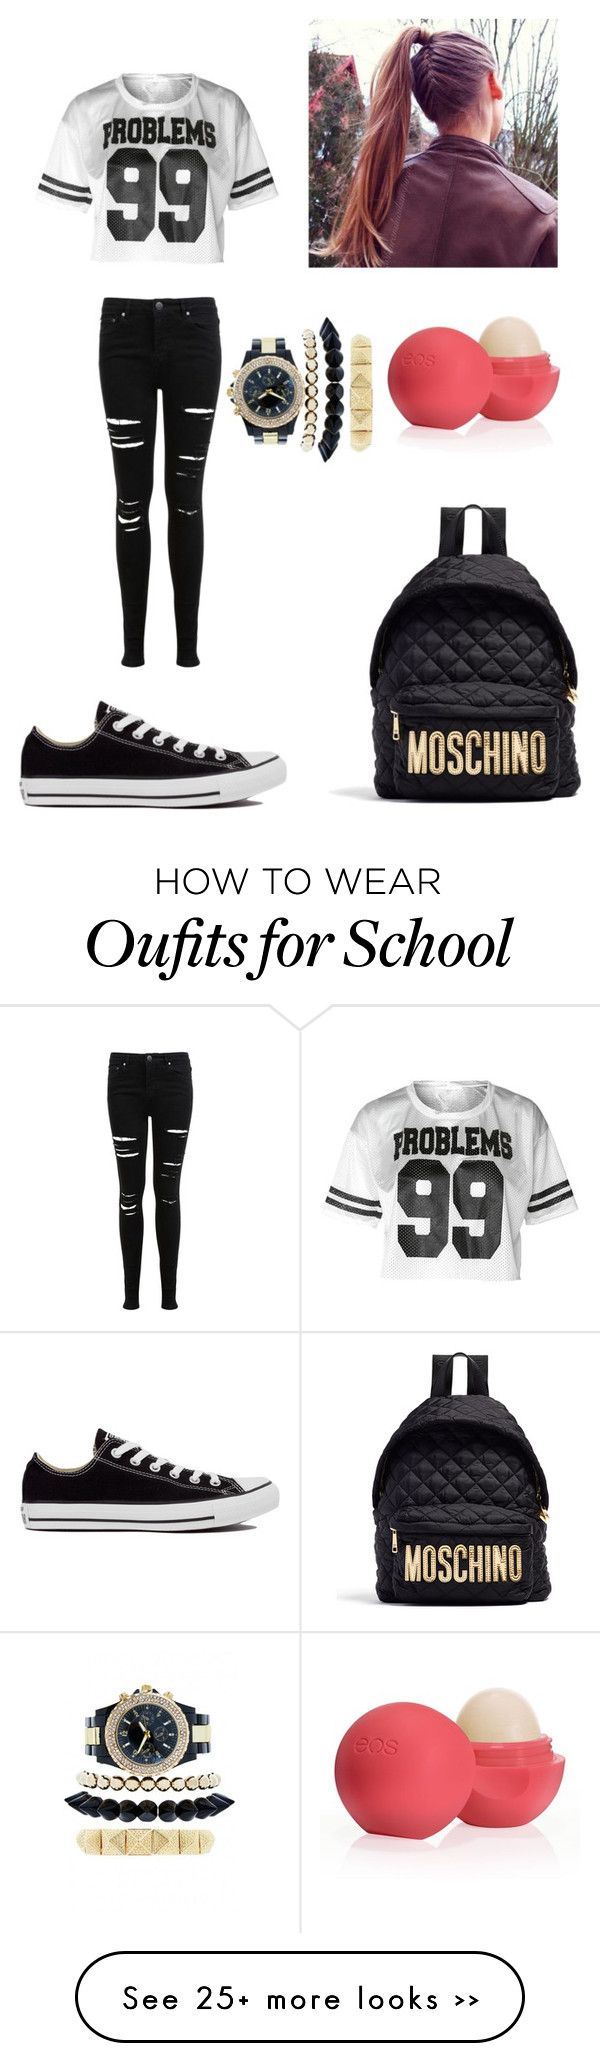 """school"" by loucaporele on Polyvore"